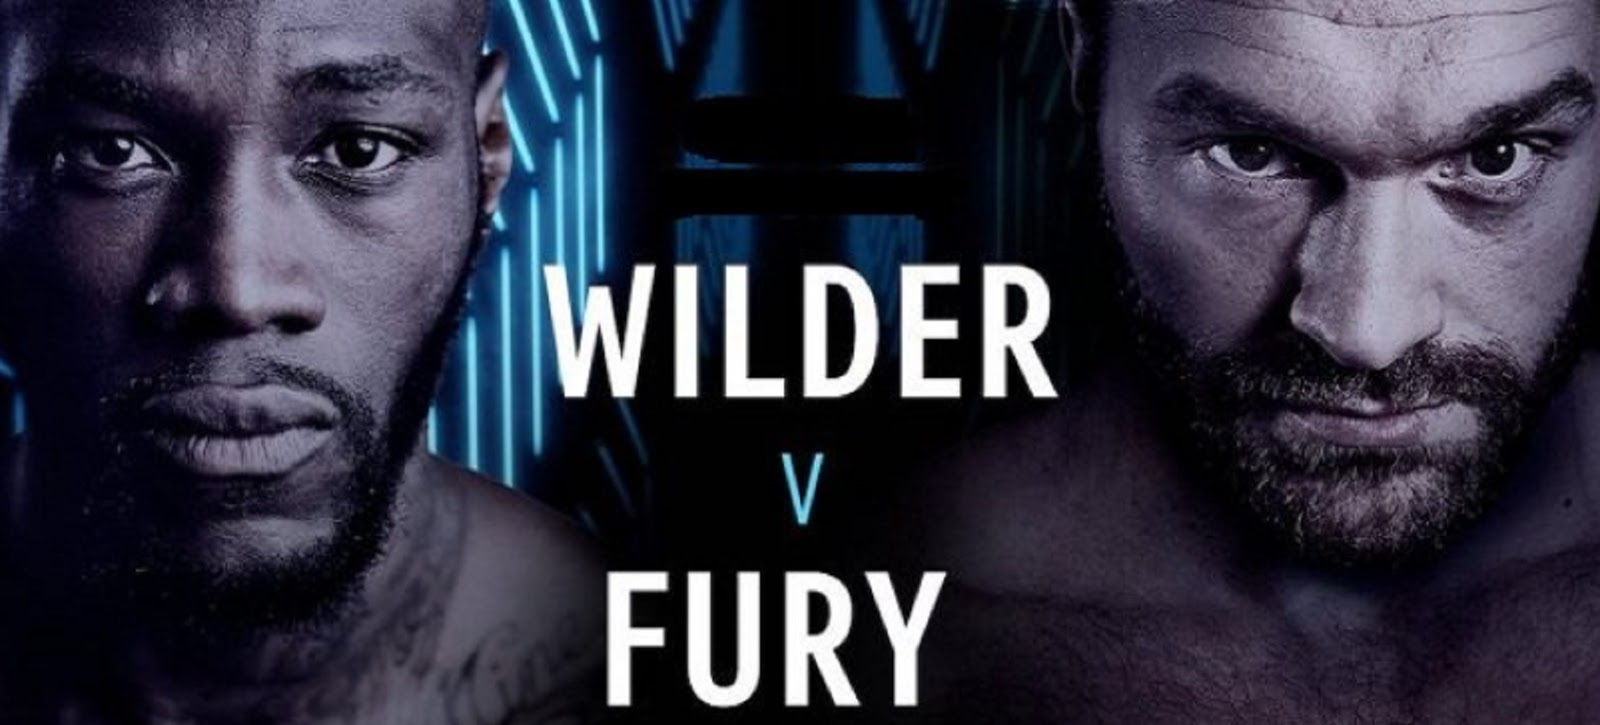 DEONTAY WILDER VS. TYSON FURY 2